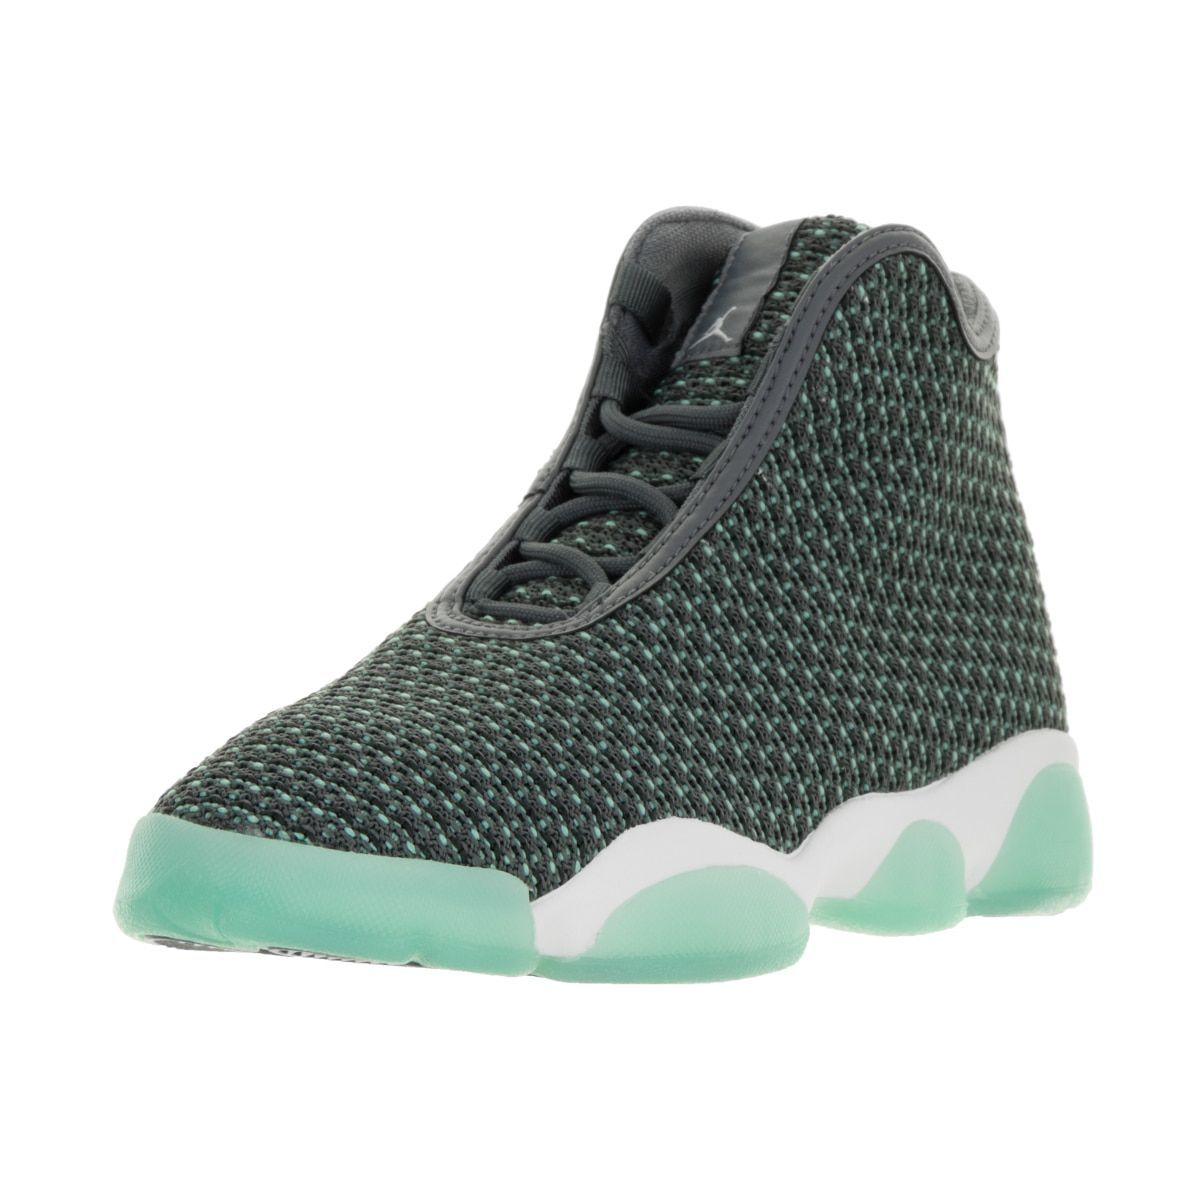 best website b9bd6 9c743 Nike Jordan Kids  Jordan Horizon BG Dark, White, and Turquoise Basketball  Shoes